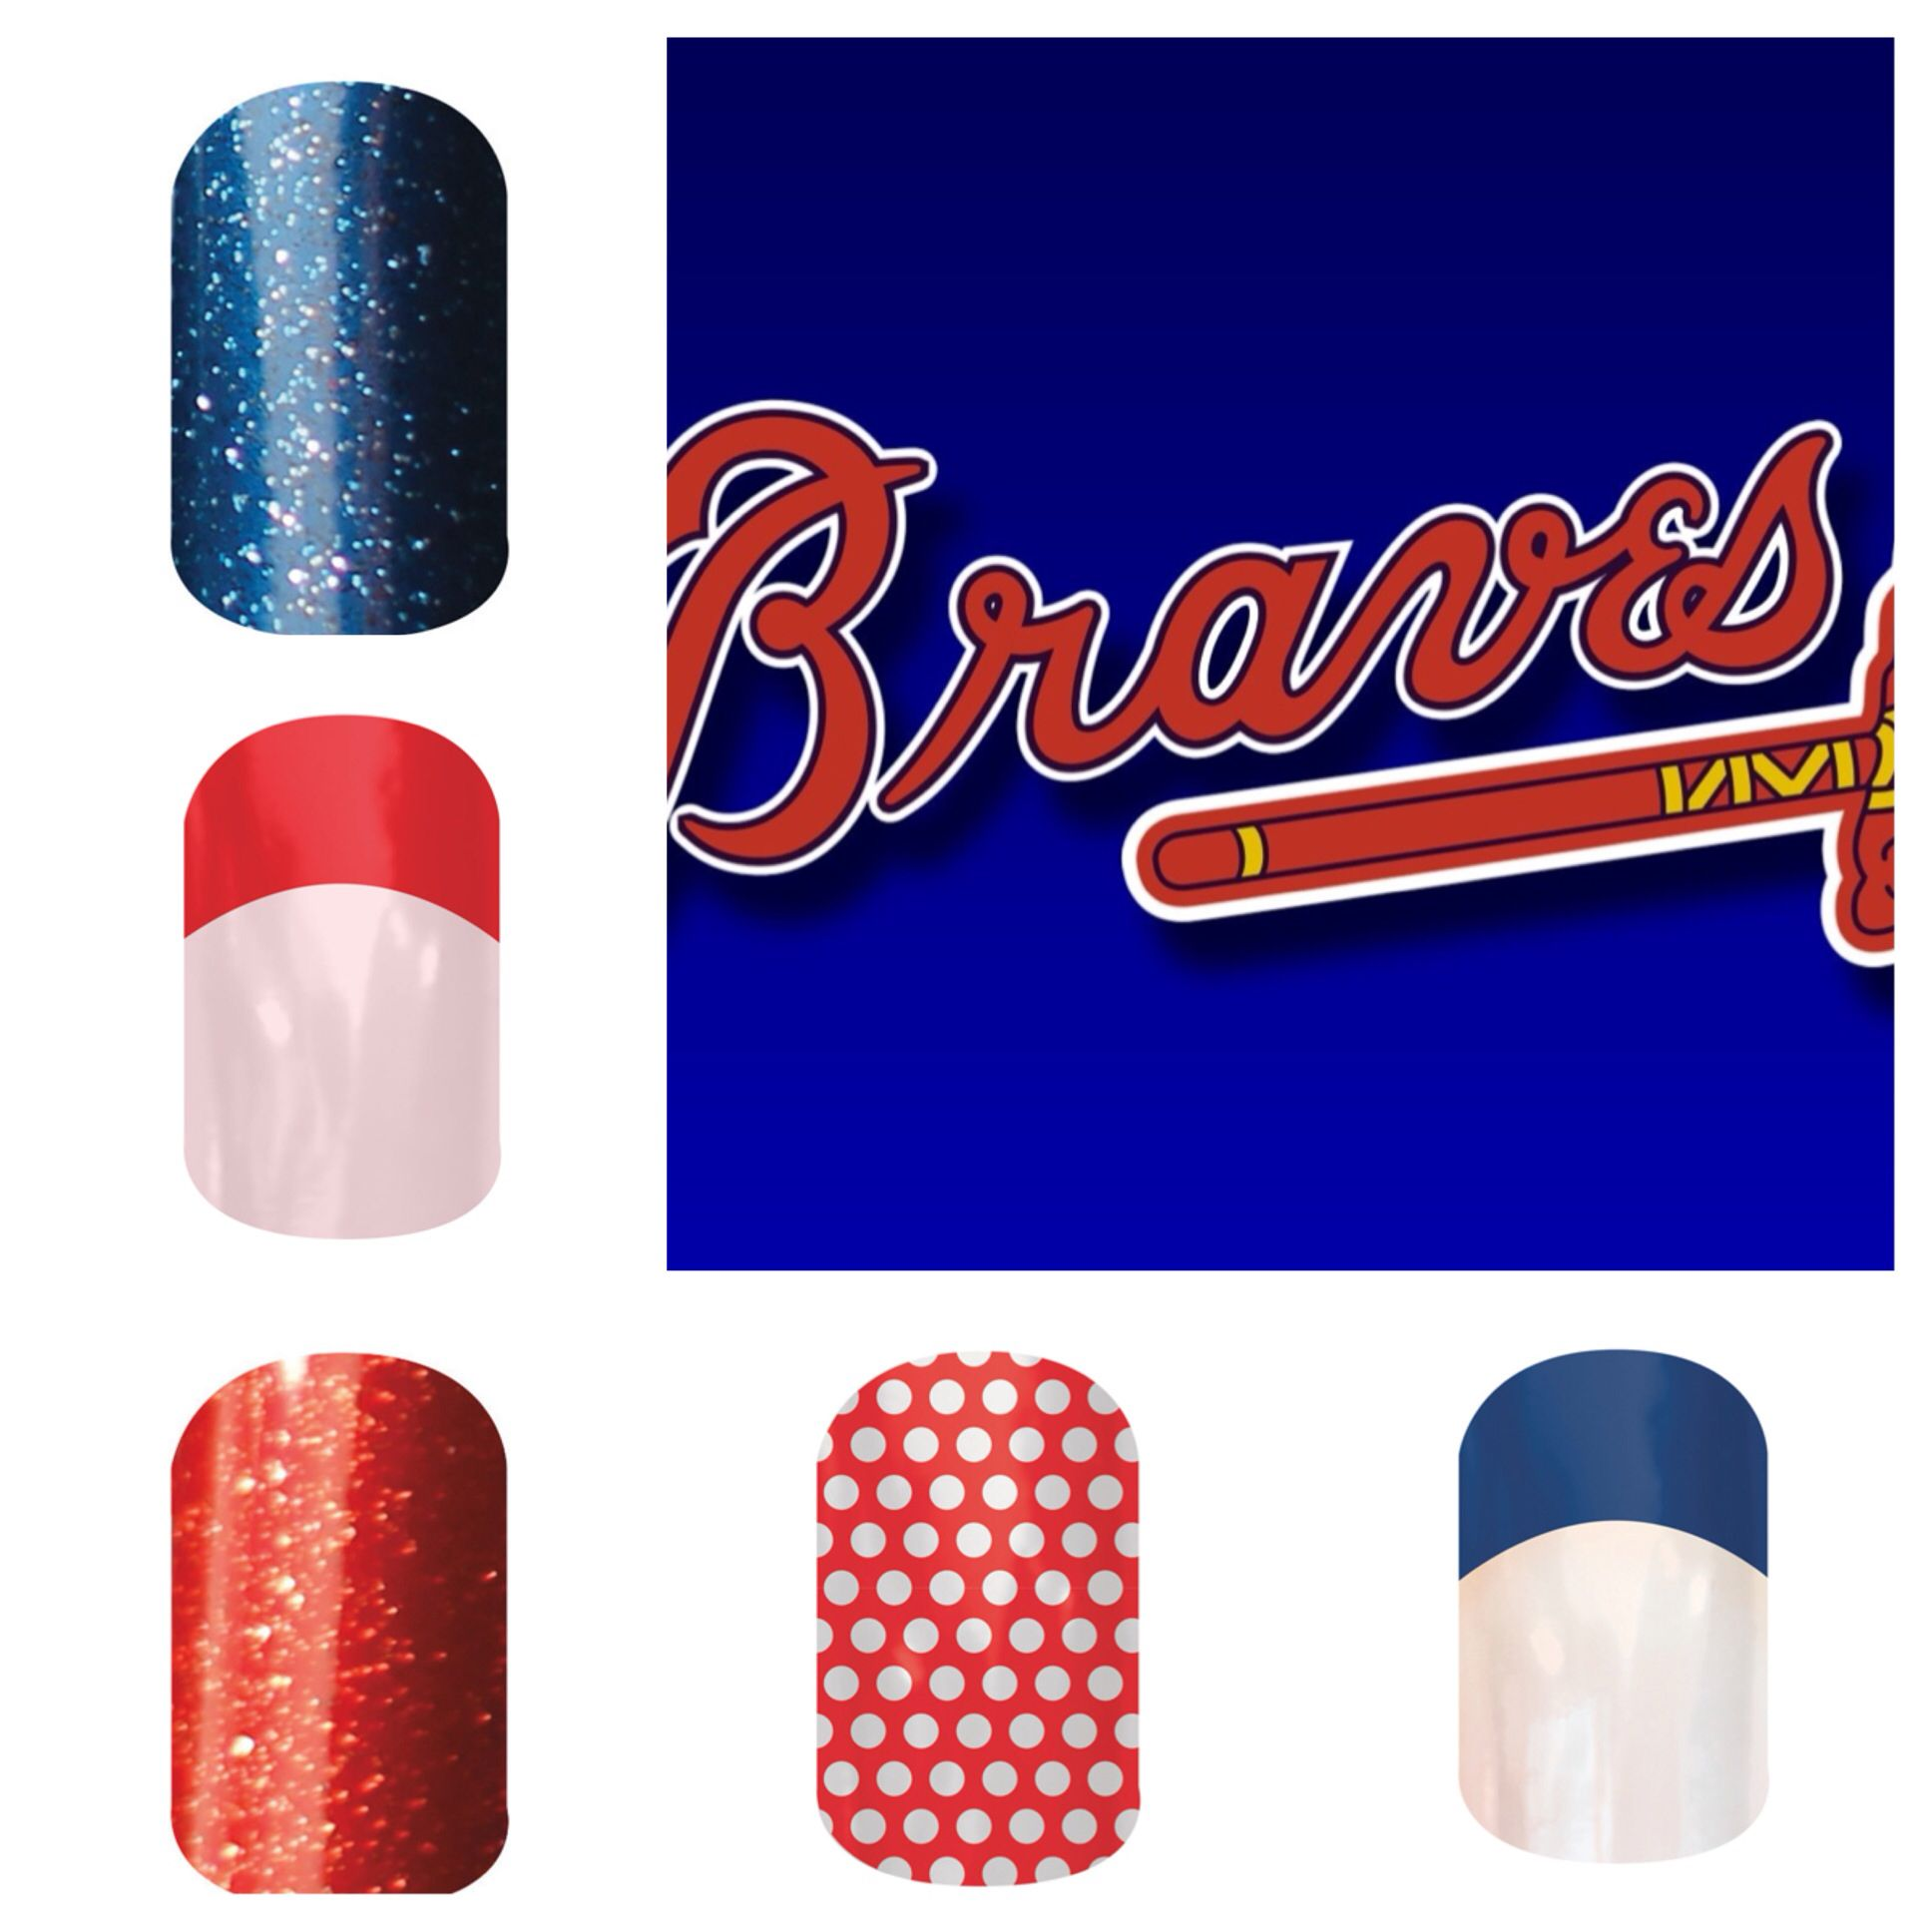 Atlanta Braves Colors Order At Www Christinarunyon Jamberrynails Net With Images How To Do Nails Jamberry Nails Jamberry